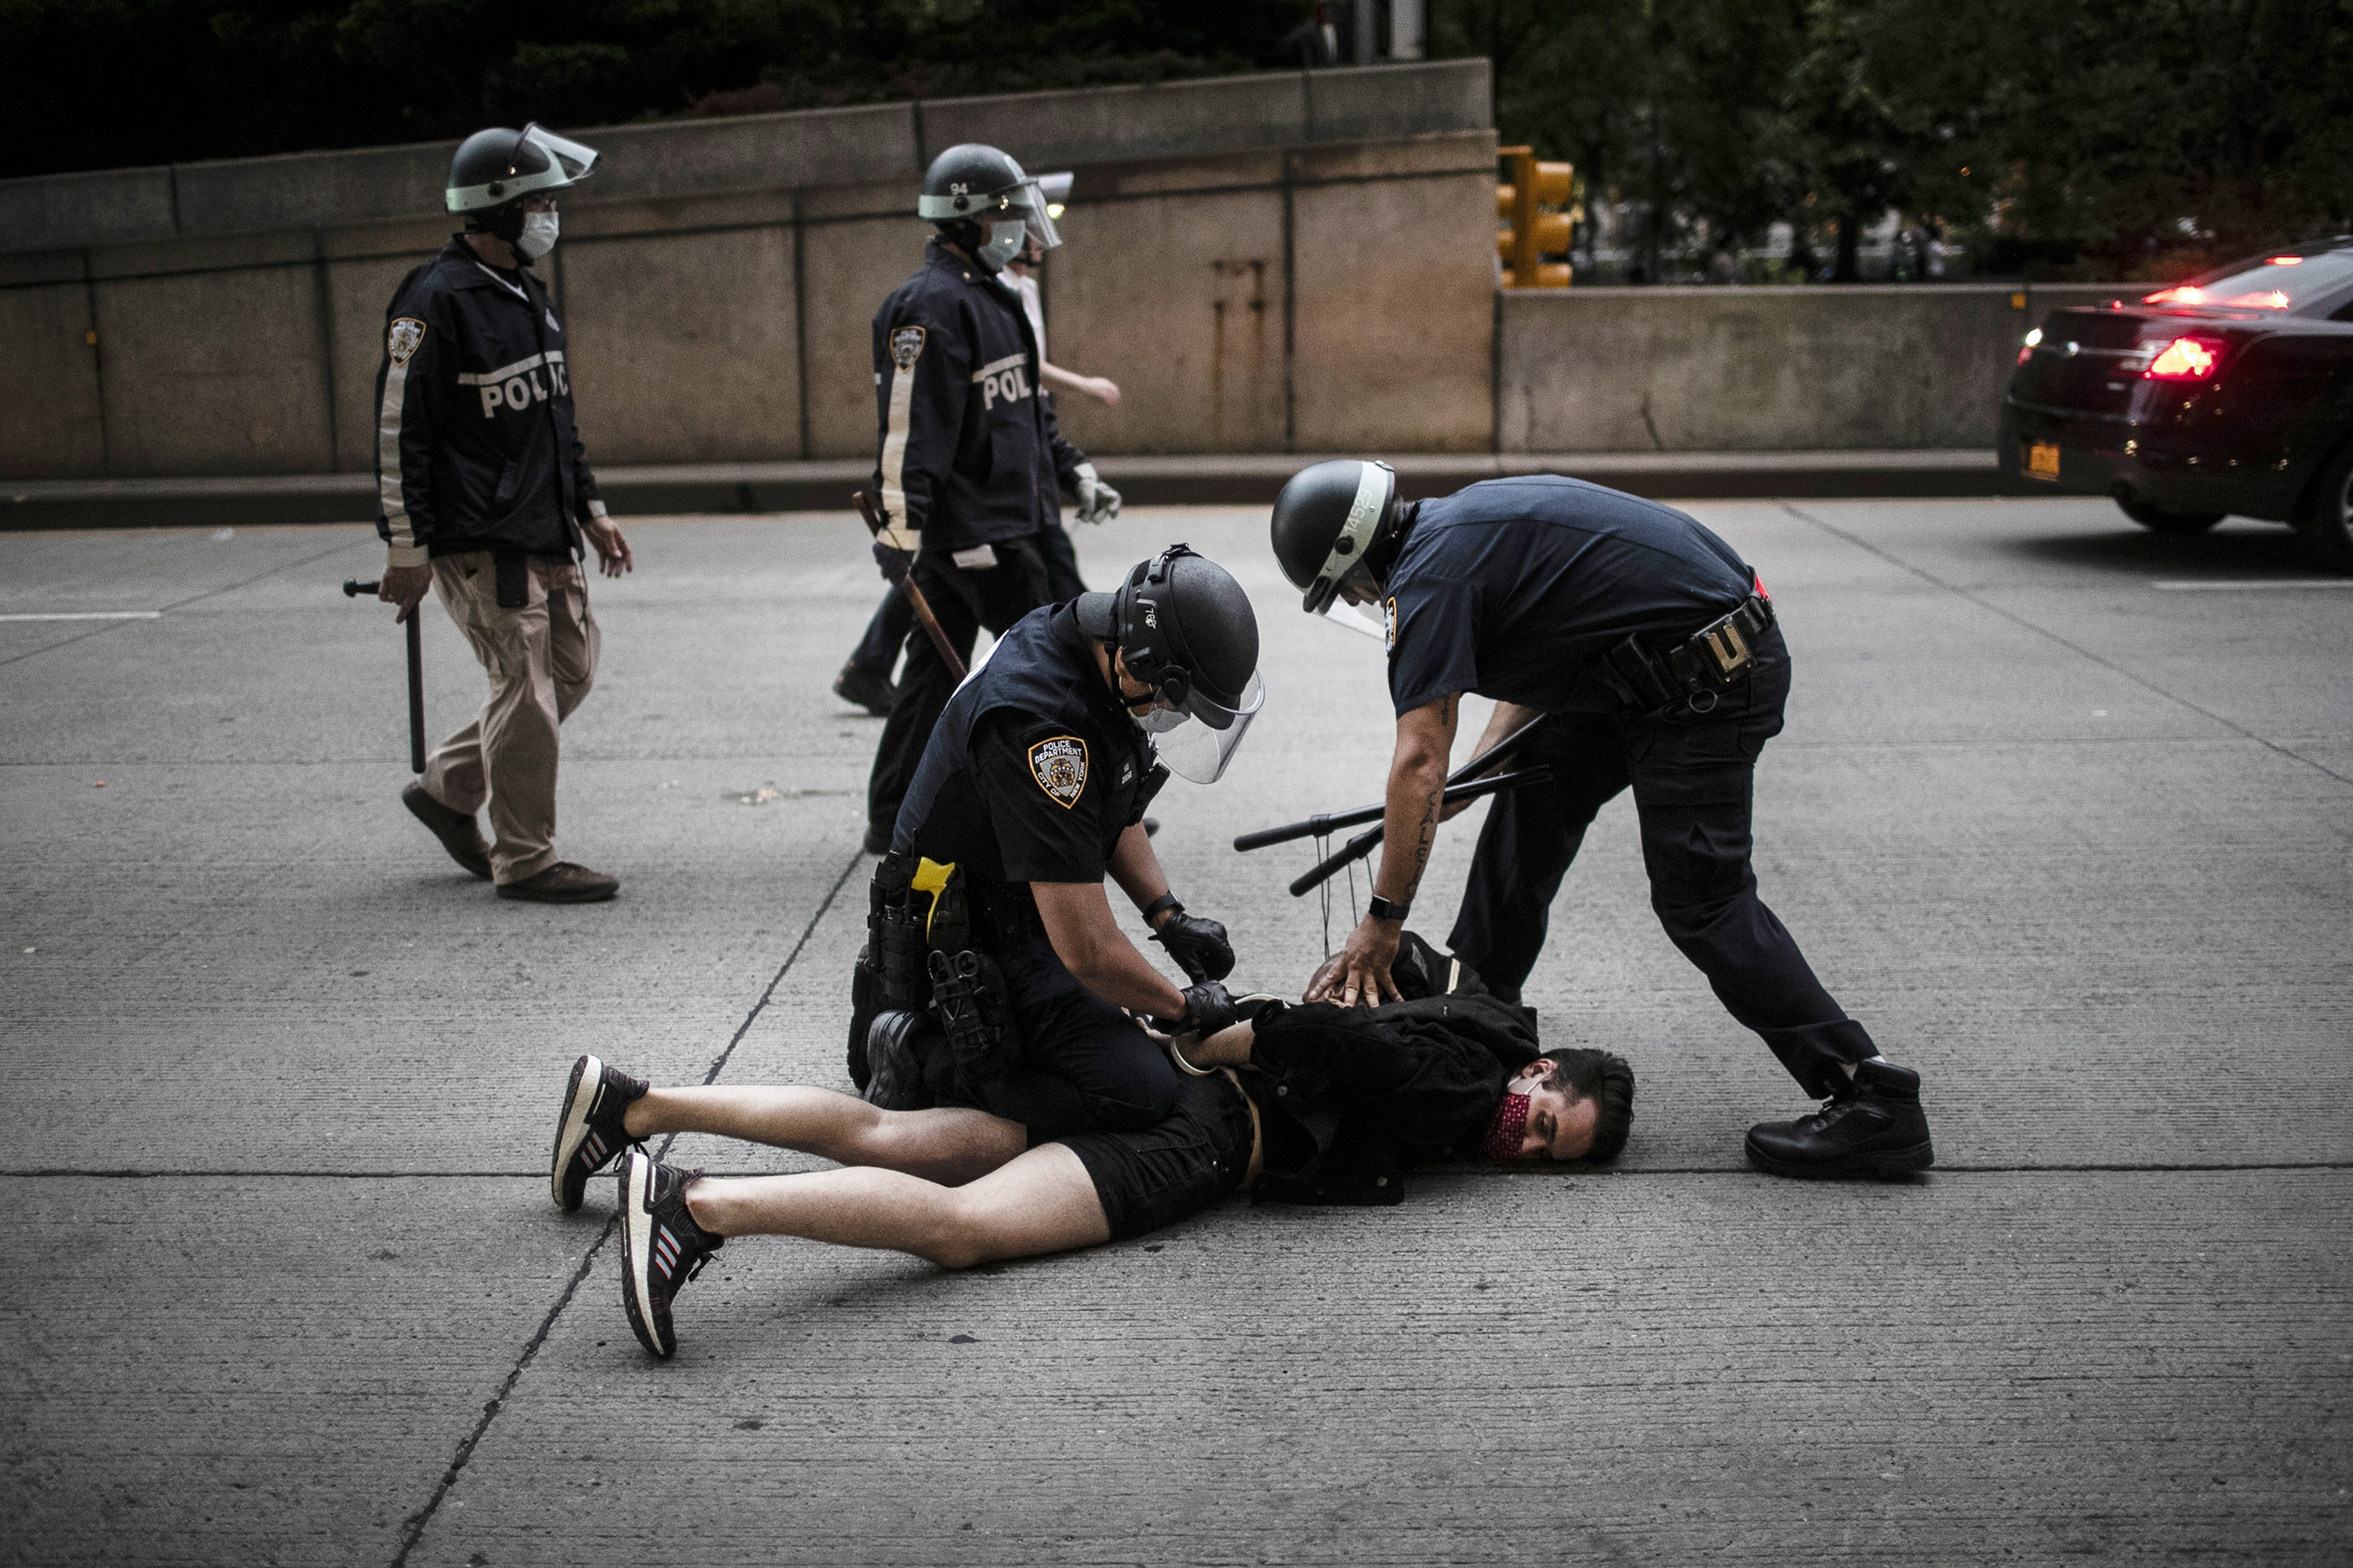 Police detain a protester who declined to get off the streets during curfew in New York, on Tuesday, June 2.